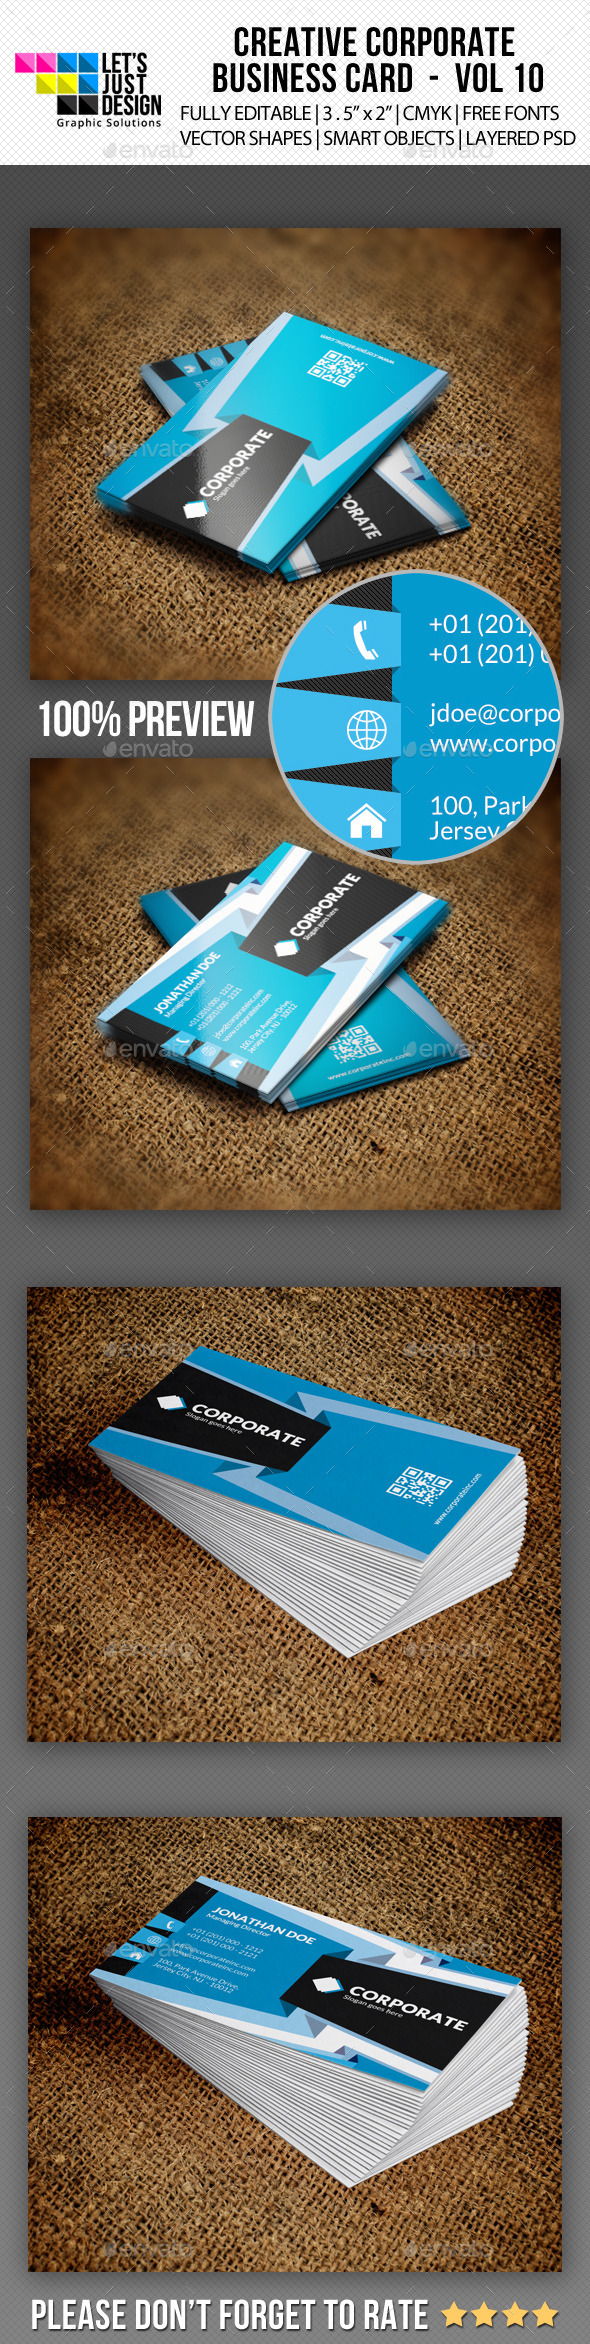 Corporate Business Card Vol 10 - Corporate Business Cards